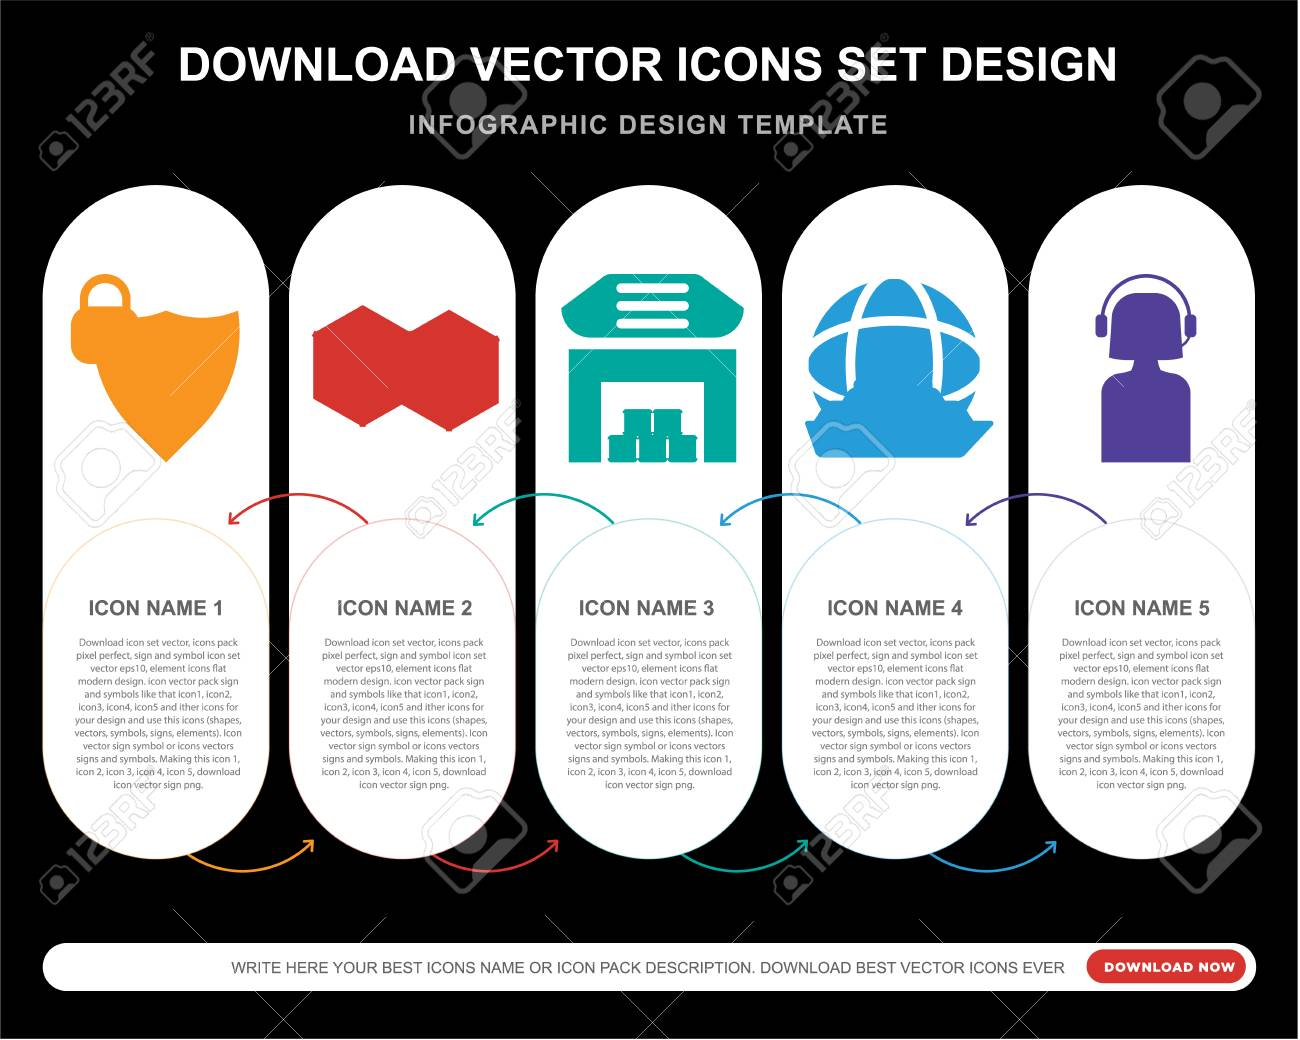 5 Vector Icons Such As Protection, Cube, Warehouse, Ship